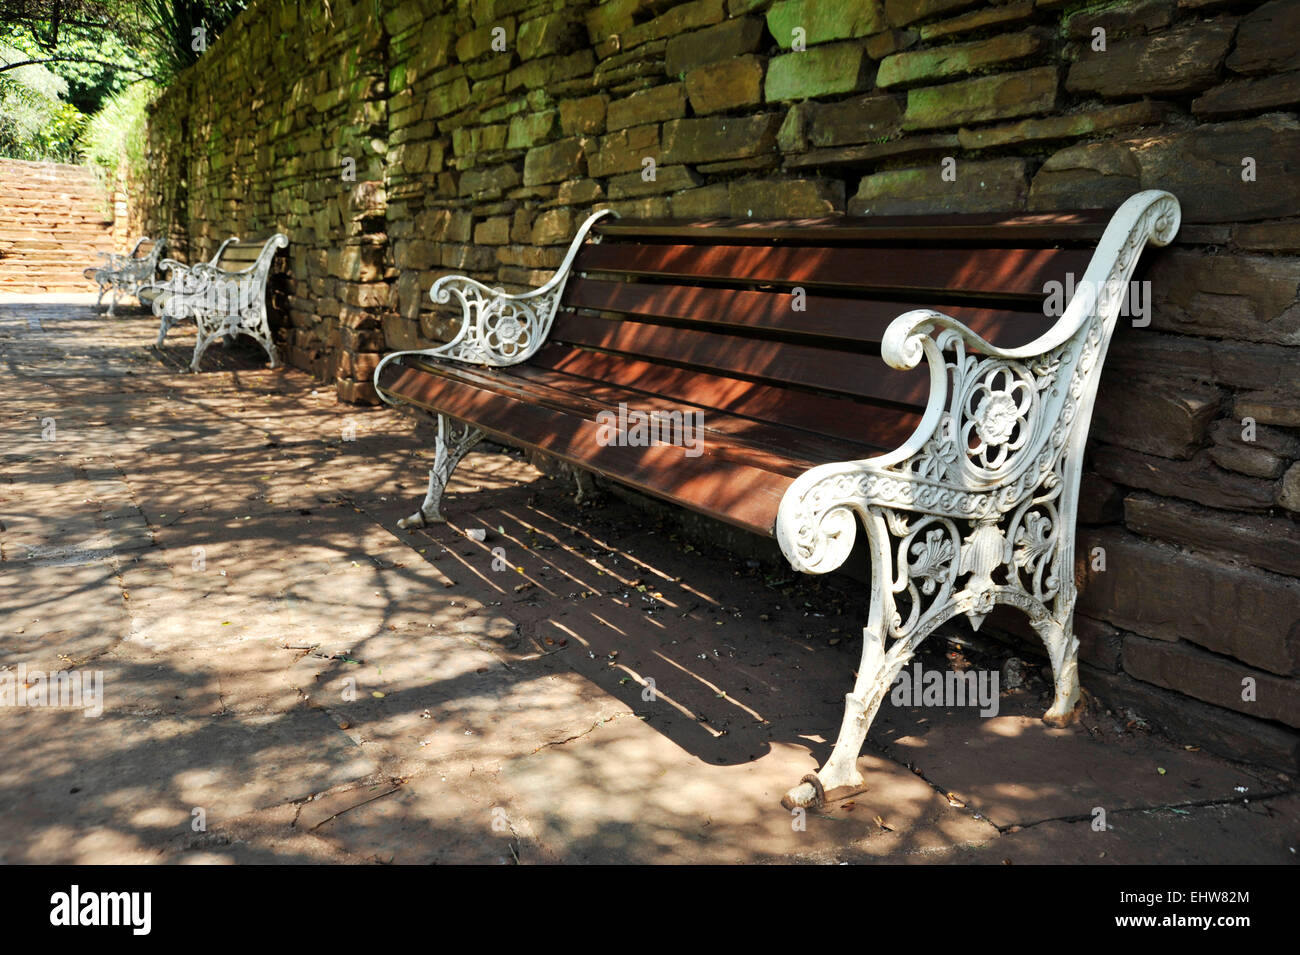 Row Of Outdoor Cast Iron And Wood Benches Next To Weathered Stone